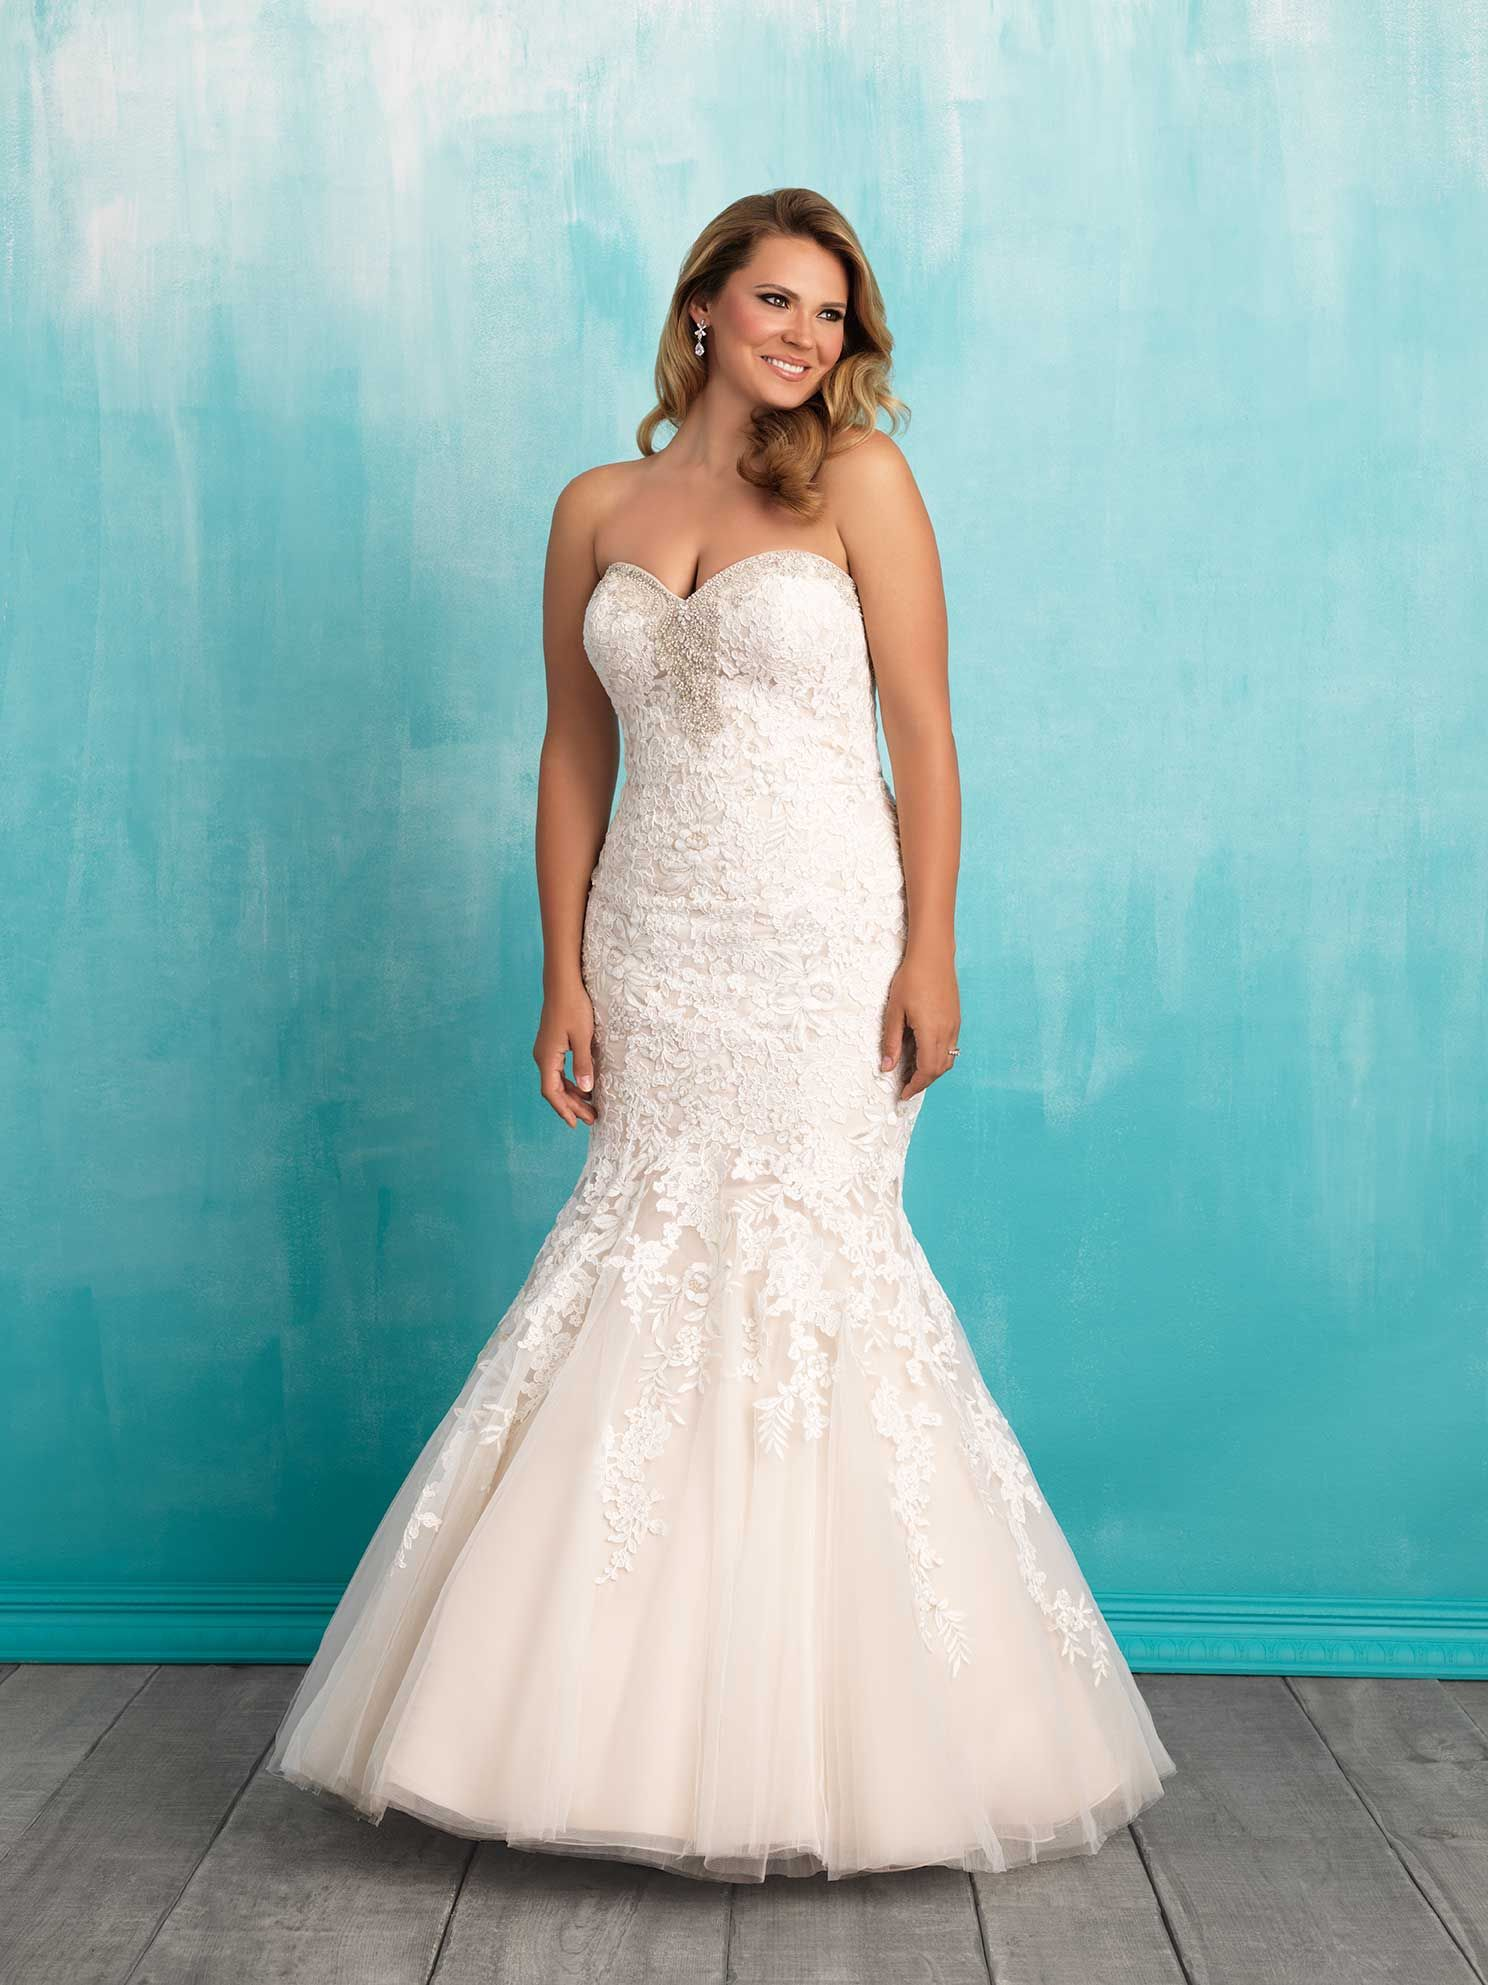 Excellent Bridal Gowns Greensboro Nc Ideas - Wedding Ideas ...